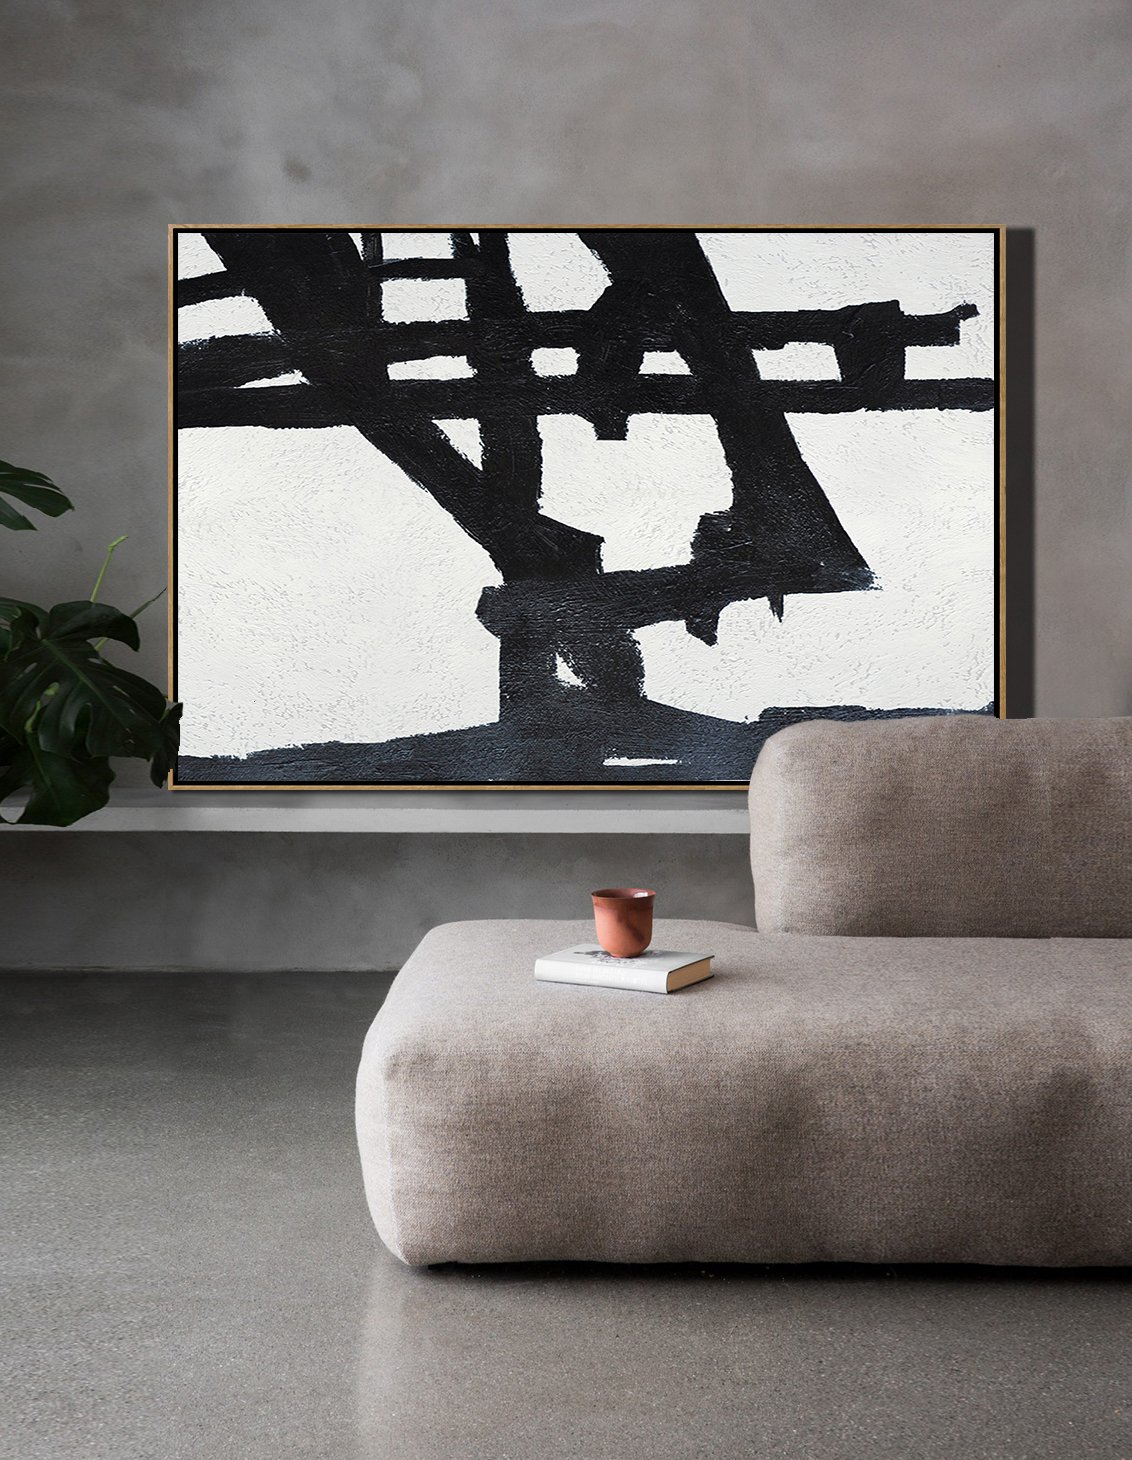 Acrylic Painting On Canvas,Hand Painted Oversized Horizontal Minimal Art On Canvas, Black And White Minimalist Painting - Large Oil Canvas Art